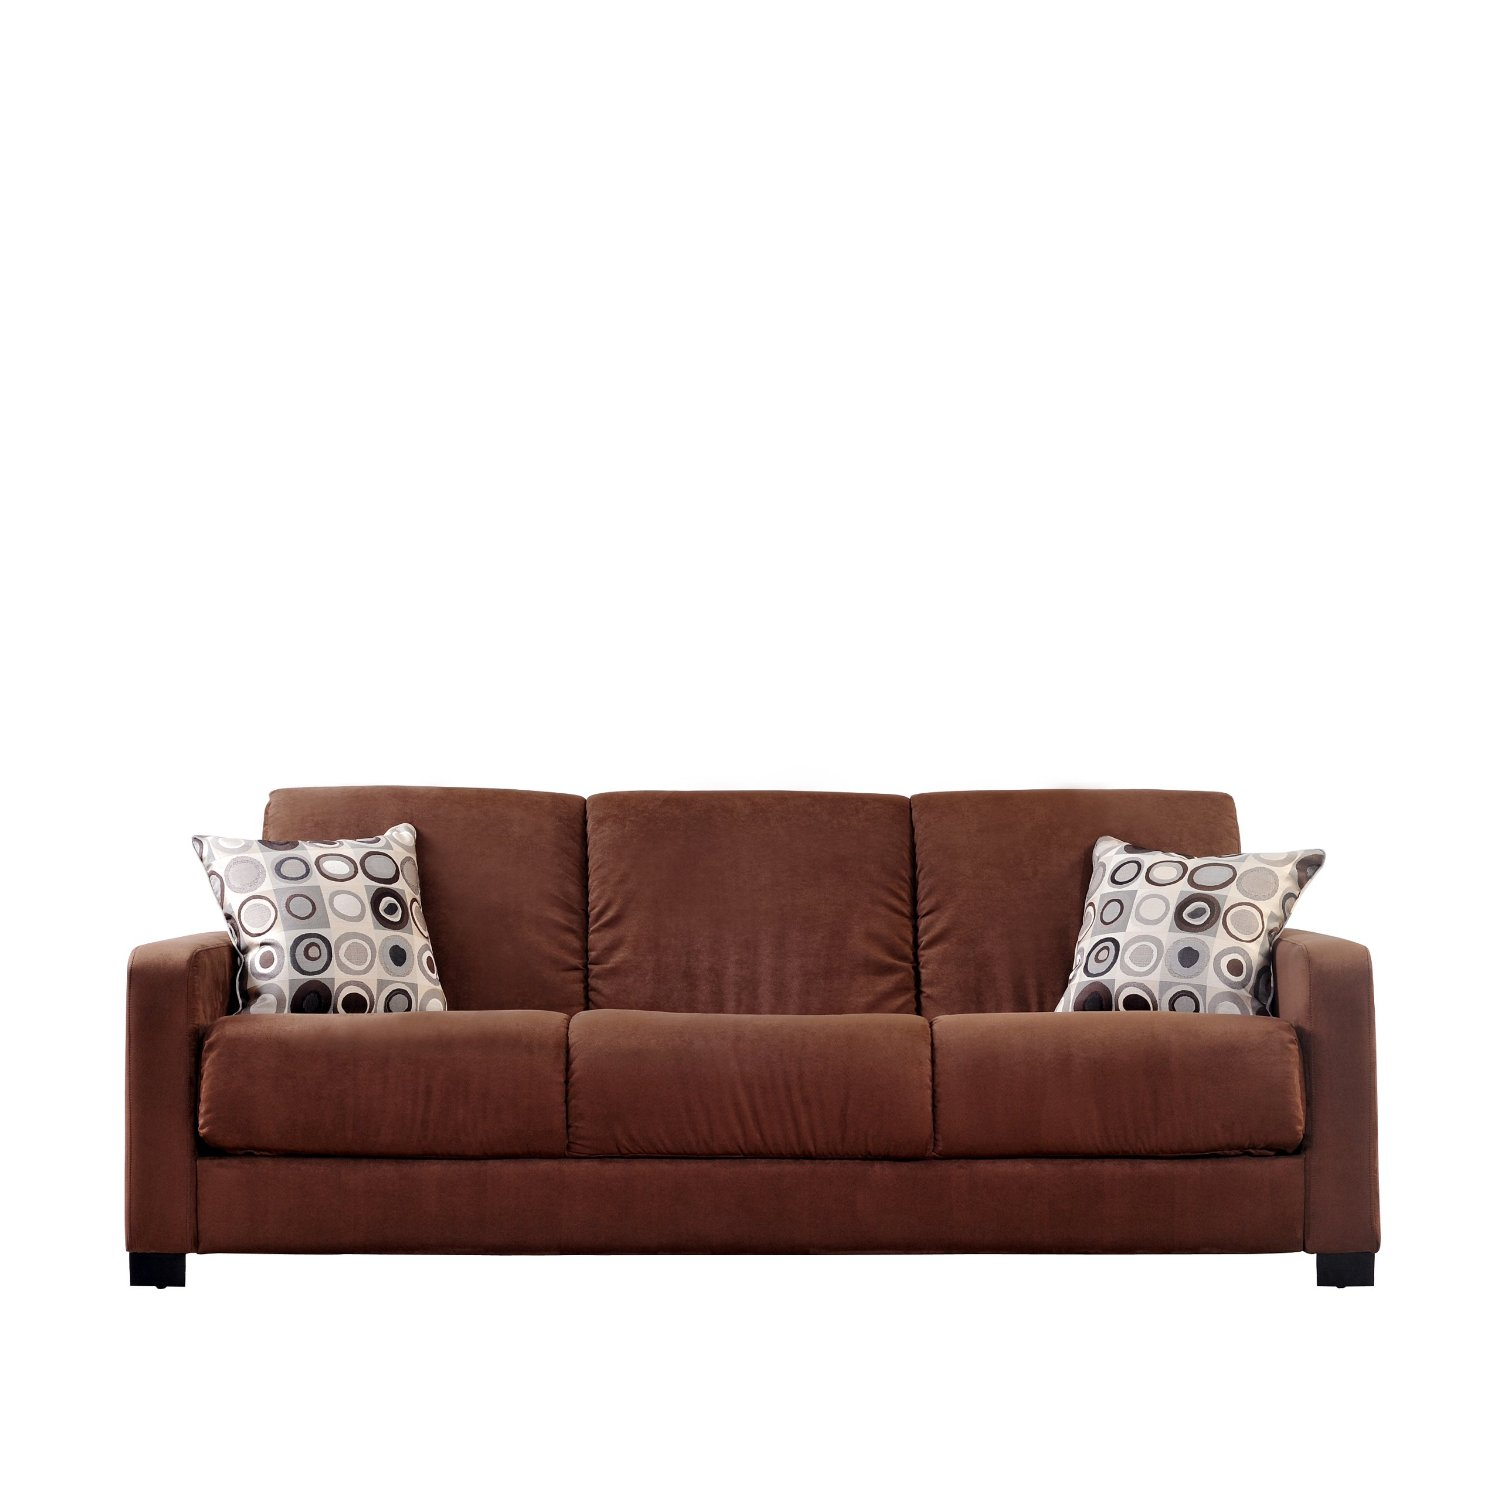 Cheap Sofa Beds: Buy Cheap Sofa: Cheap Sectional Sofa